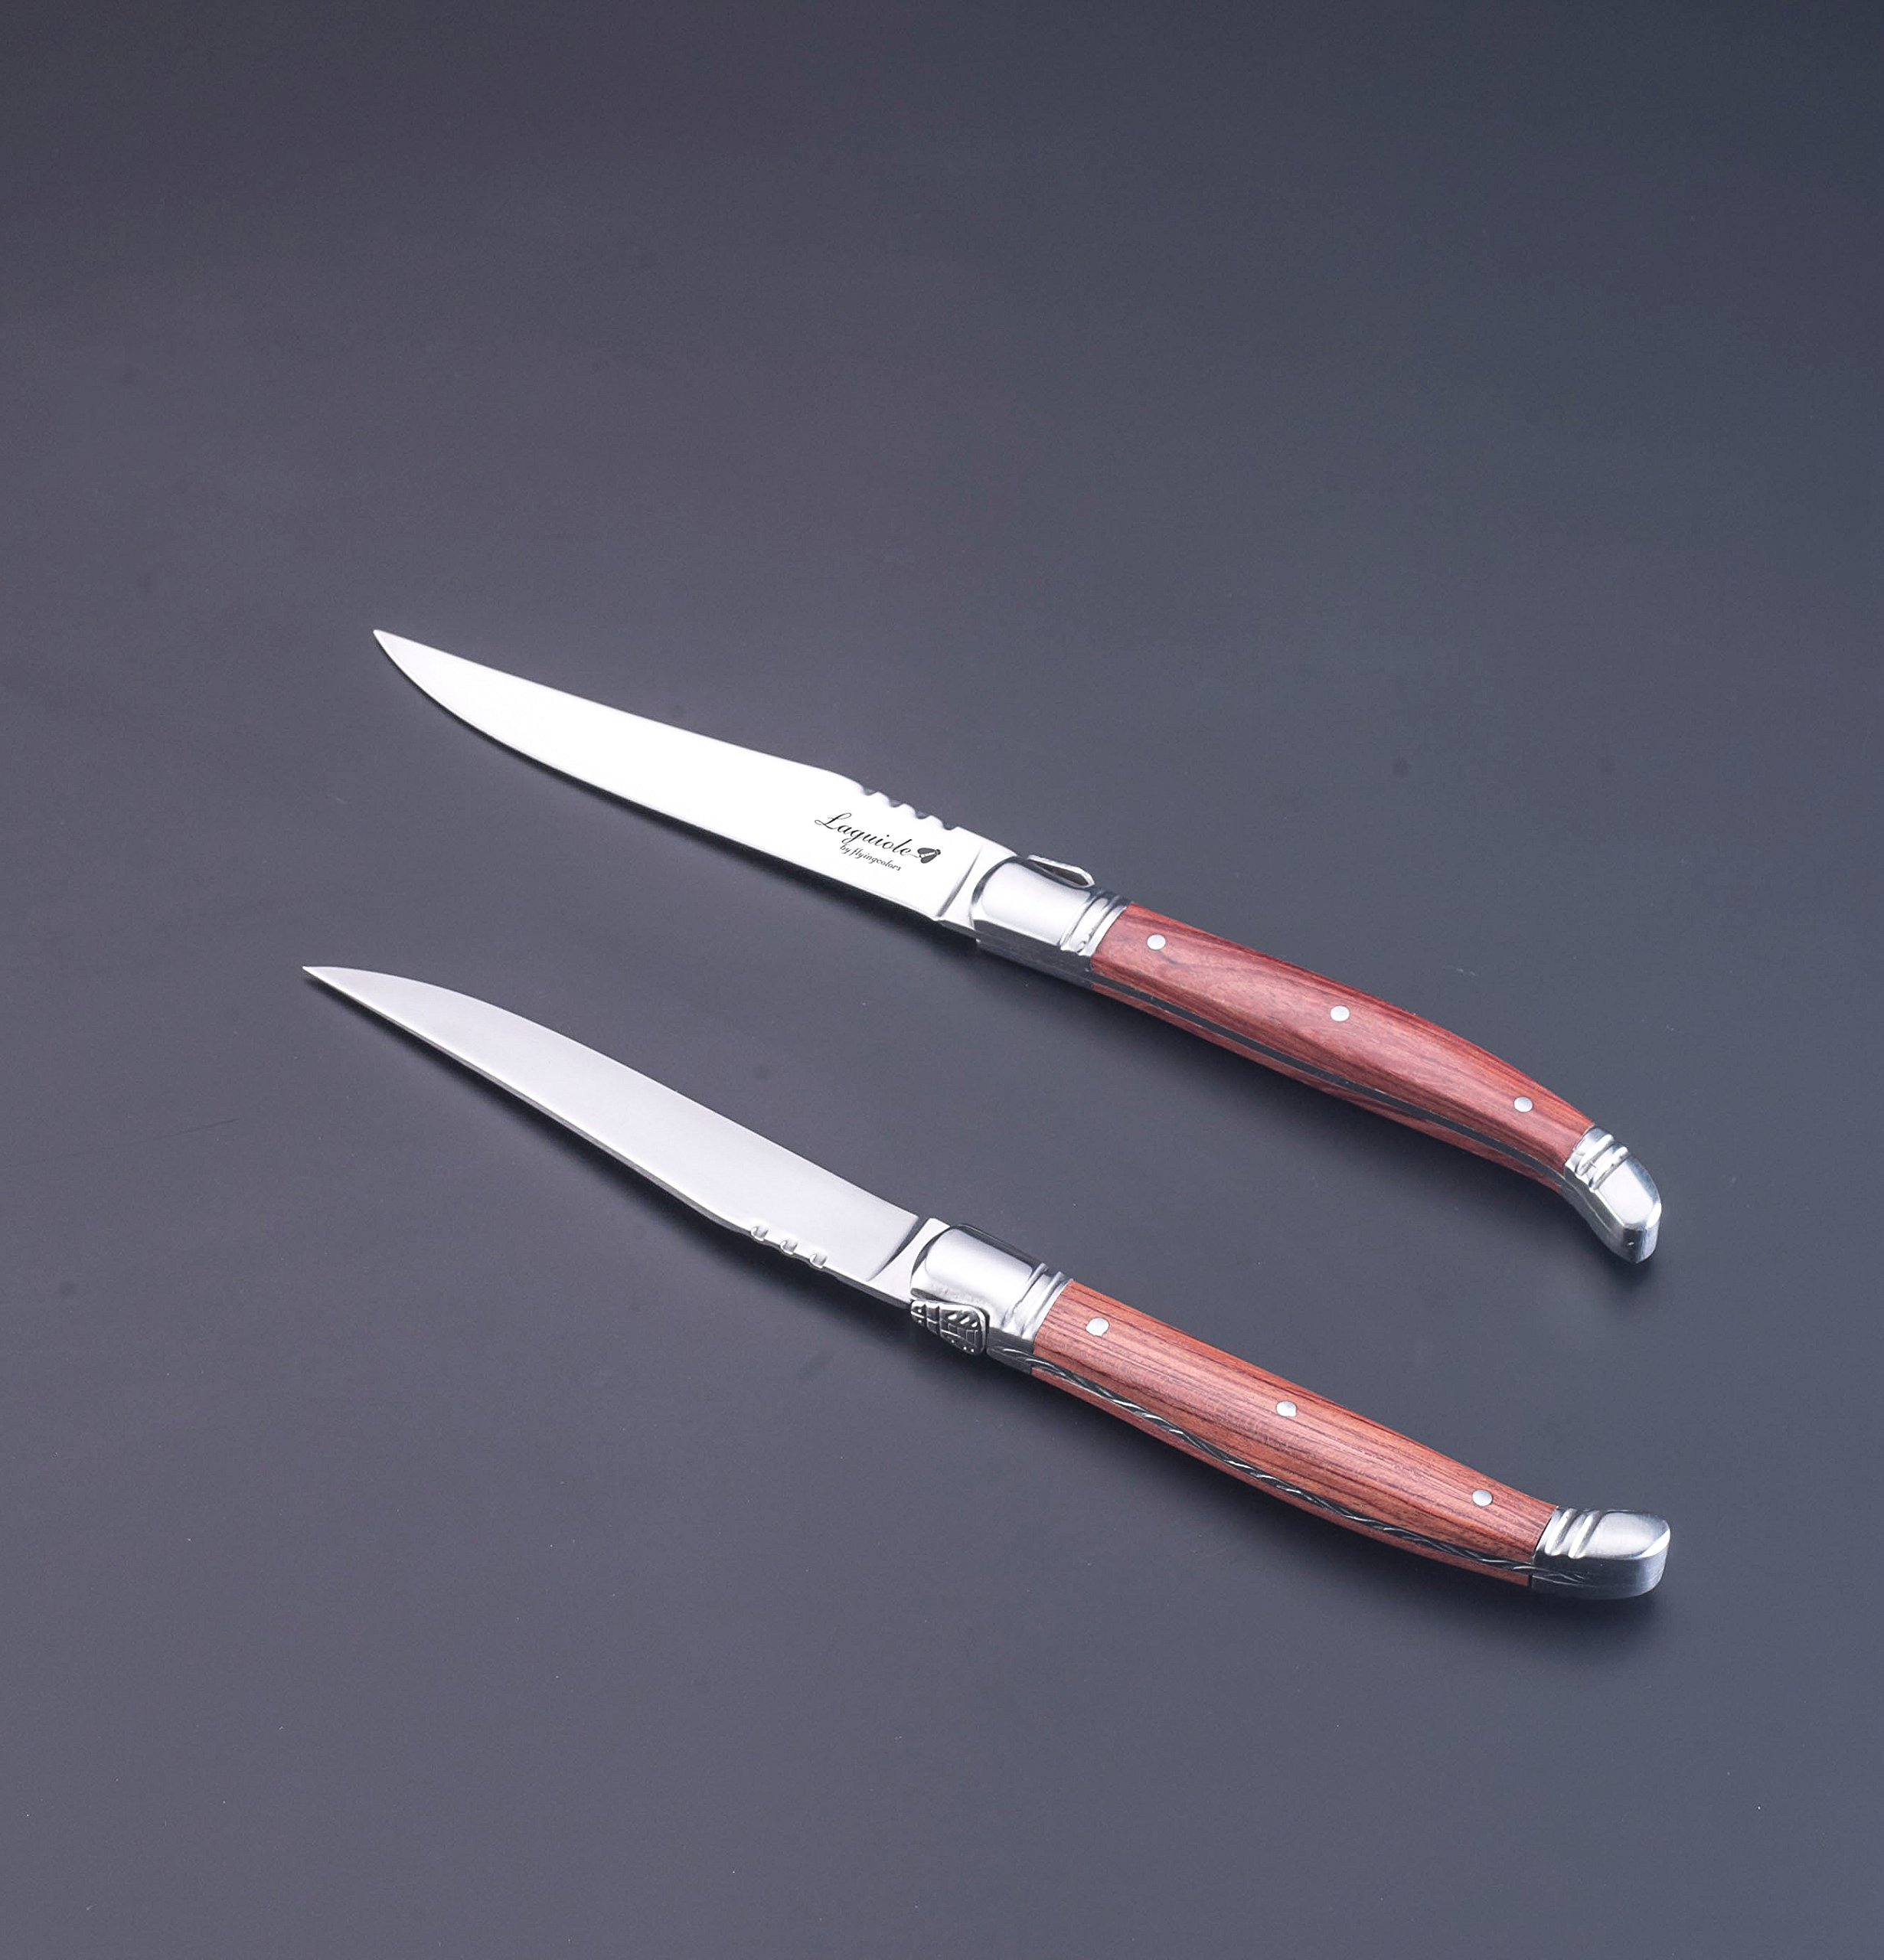 FlyingColors Laguiole Steak Knife. Stainless Steel, Rose Wood Handle, Wooden Gift Box, 6 Piece by LAGUIOLE BY FLYINGCOLORS (Image #5)